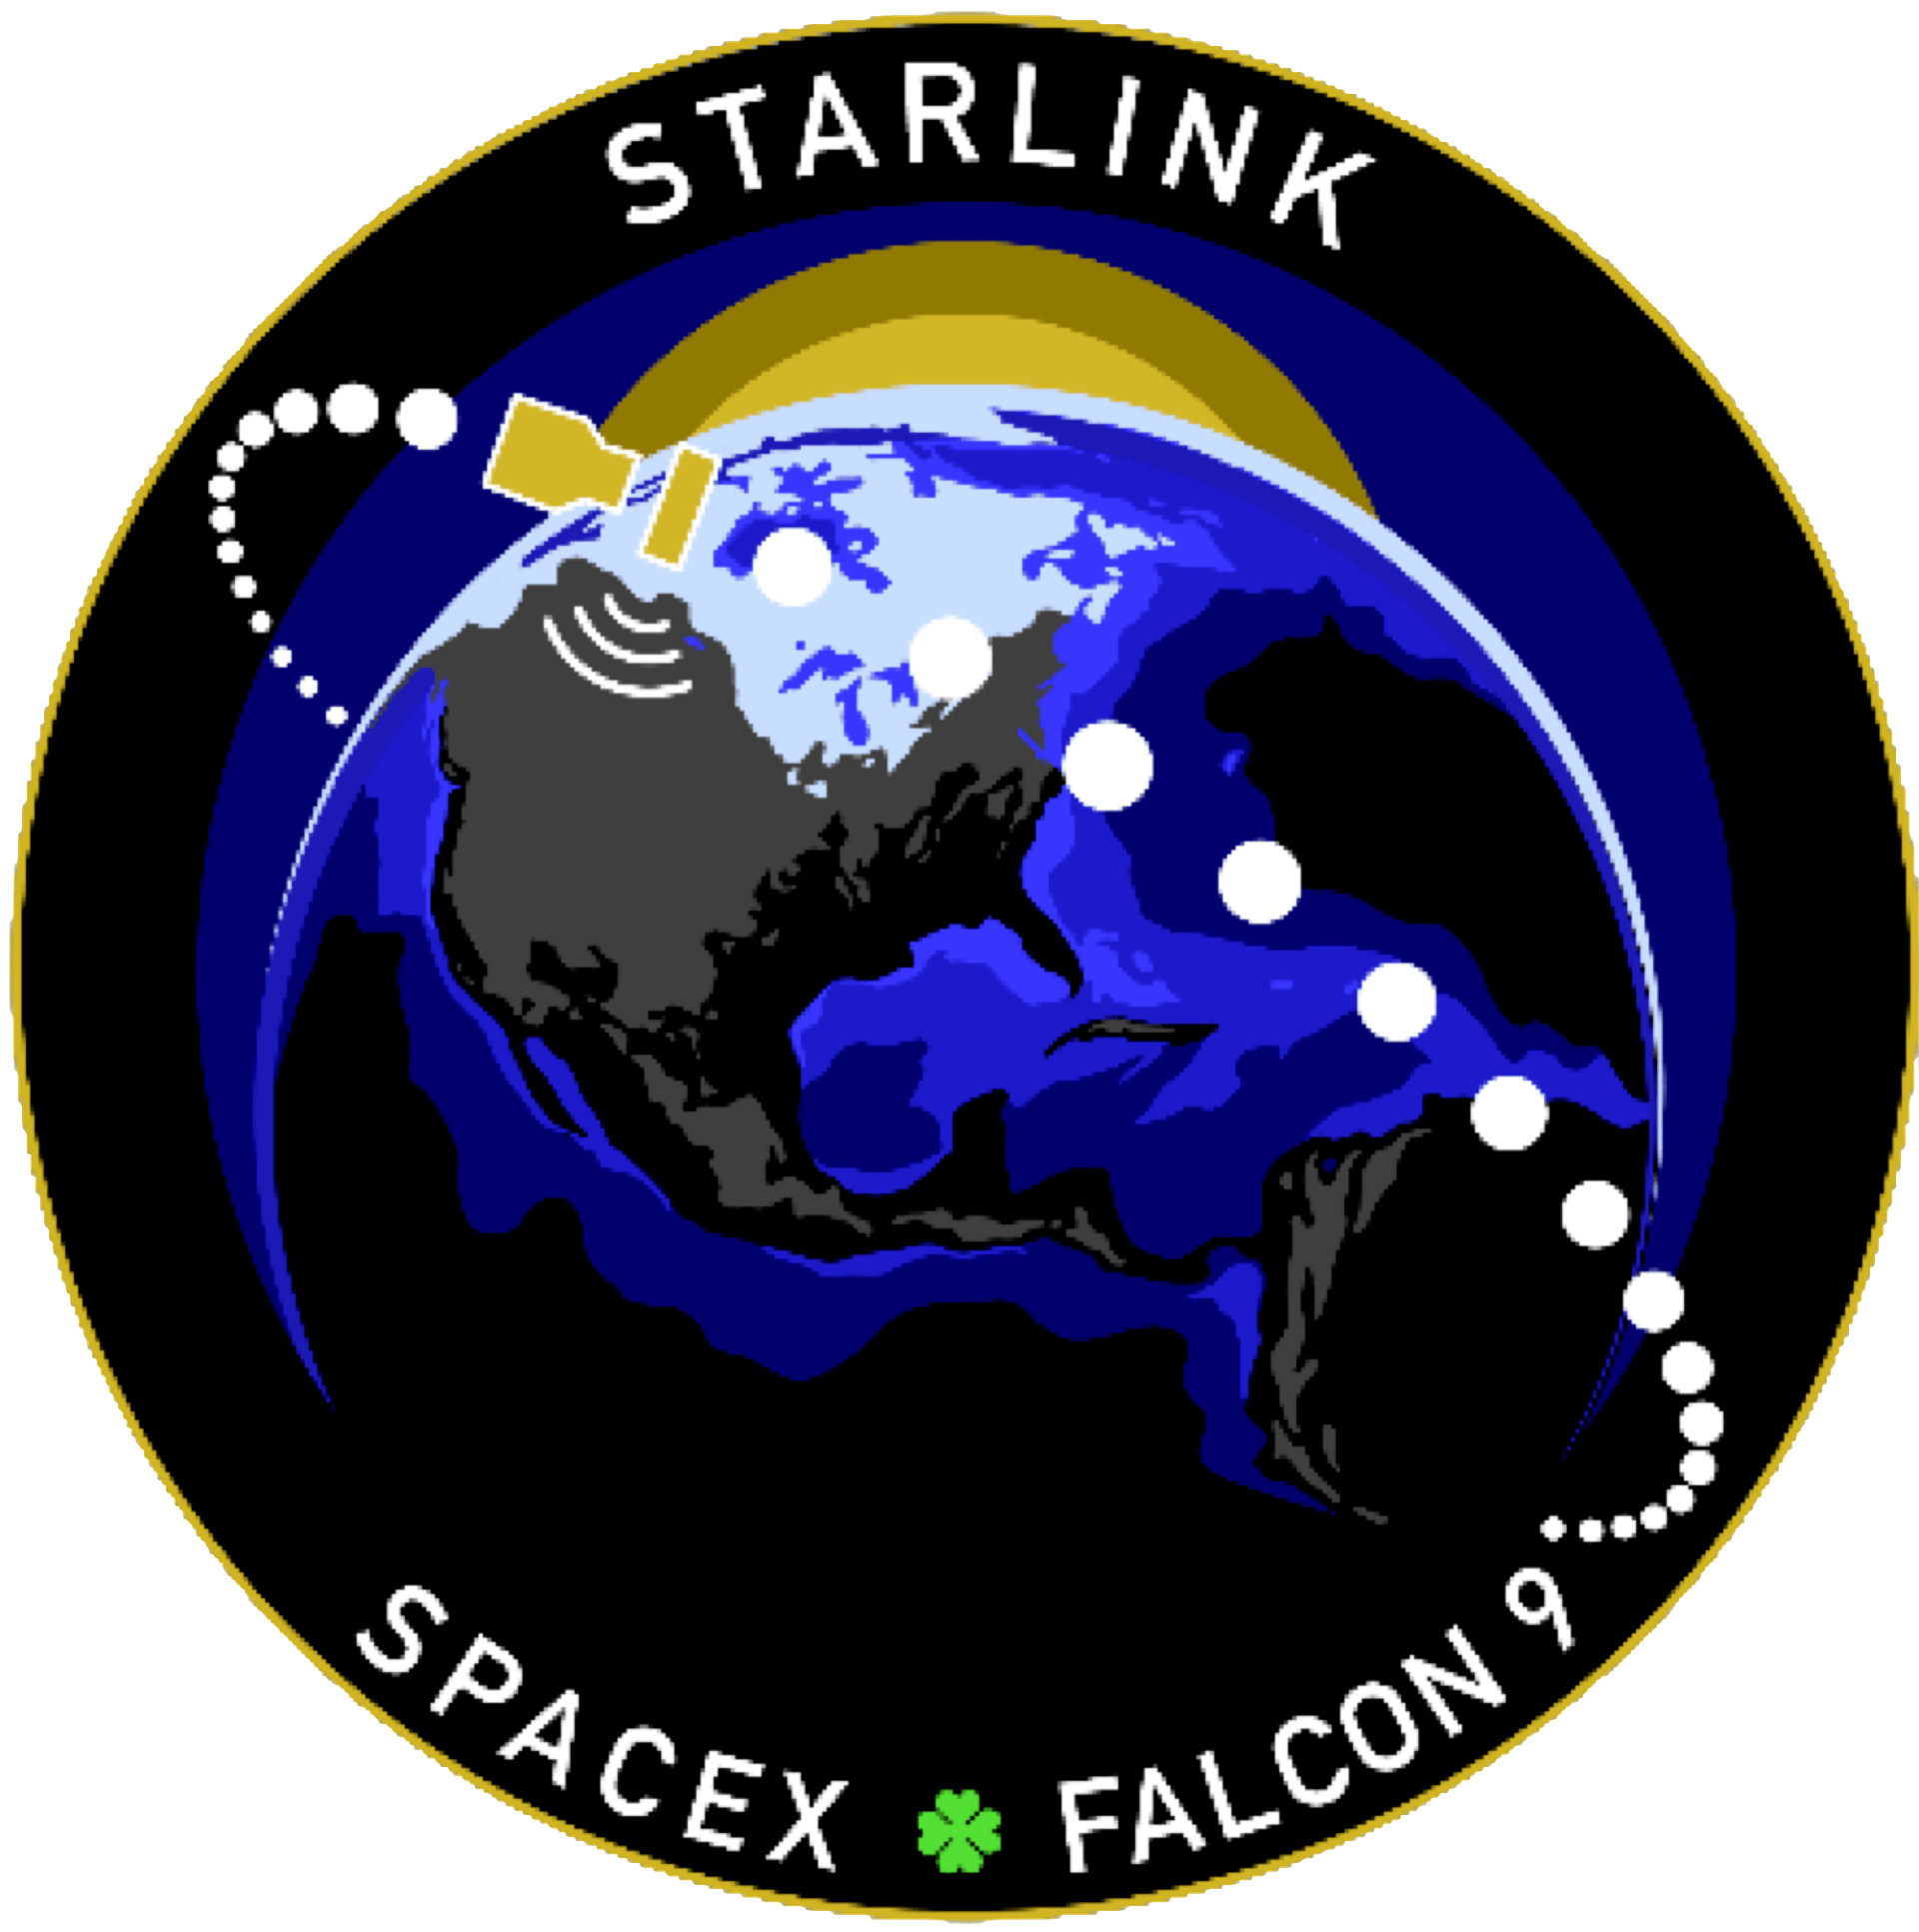 Mission patch for Starlink 30